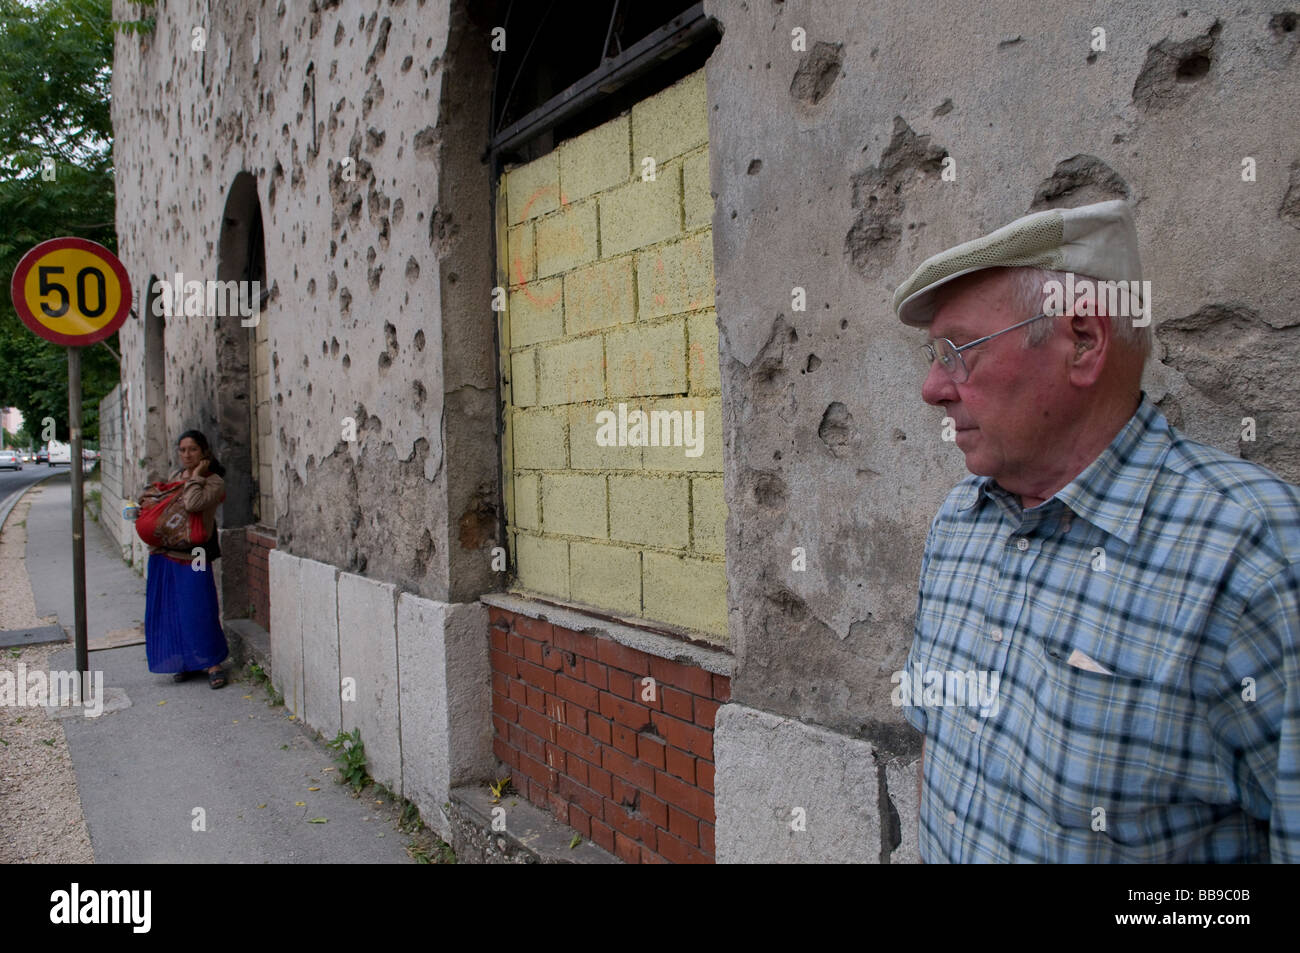 A Bosnian Croat with a Gypsy woman standing by a house showing shrapnel damage from the 1992-95 war in town of Mostar - Stock Image